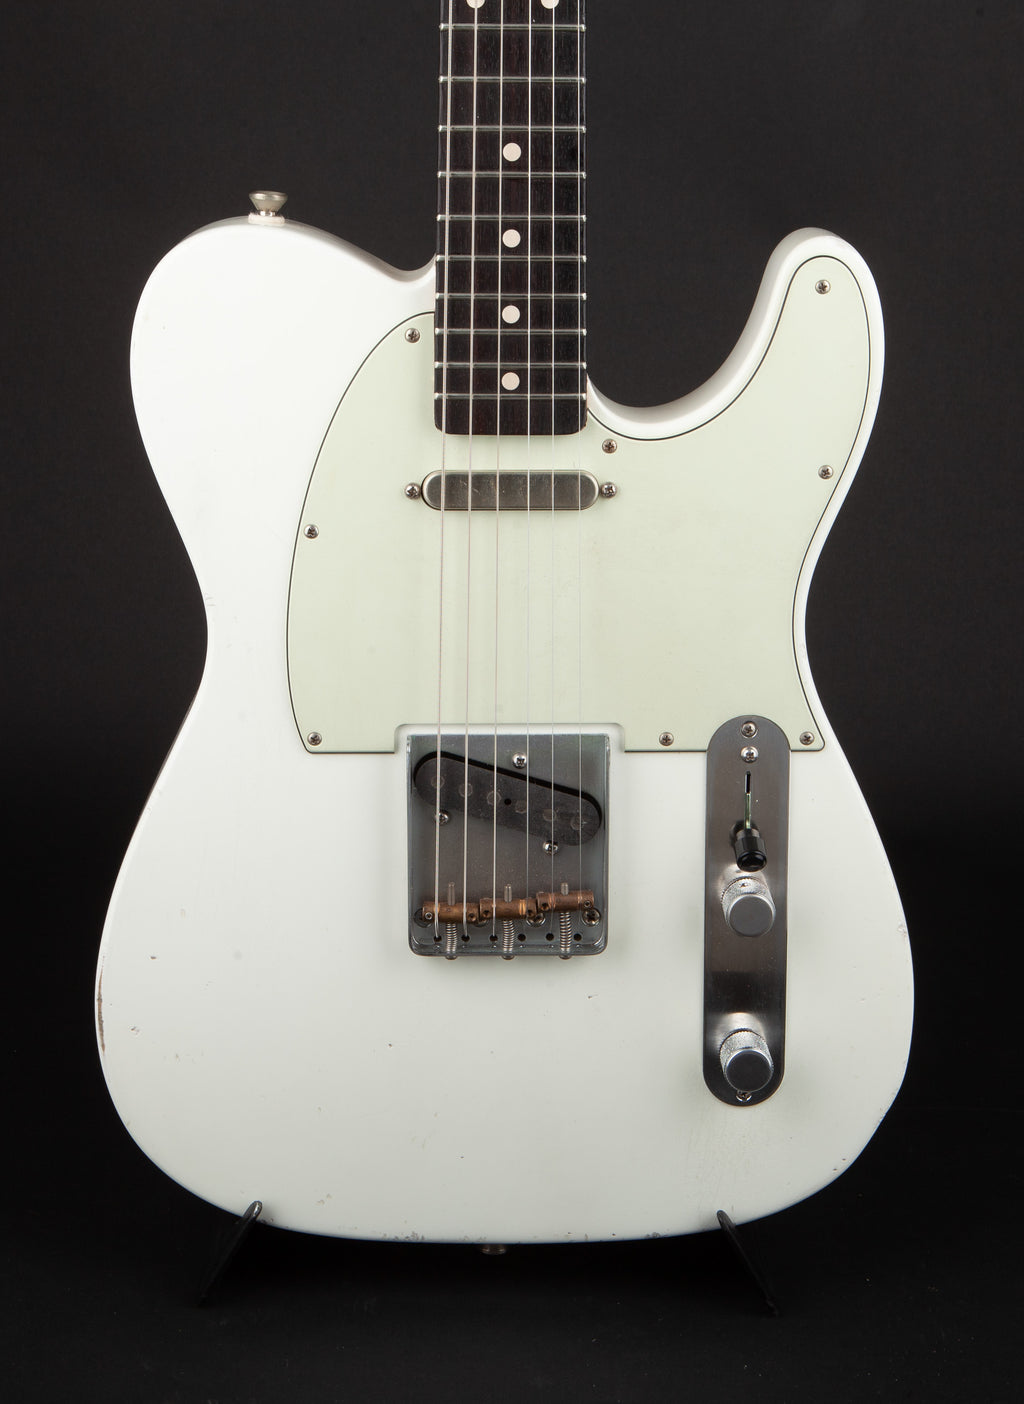 Smitty Guitars: Classic T White with Mastergrade Roasted Flame Maple Neck